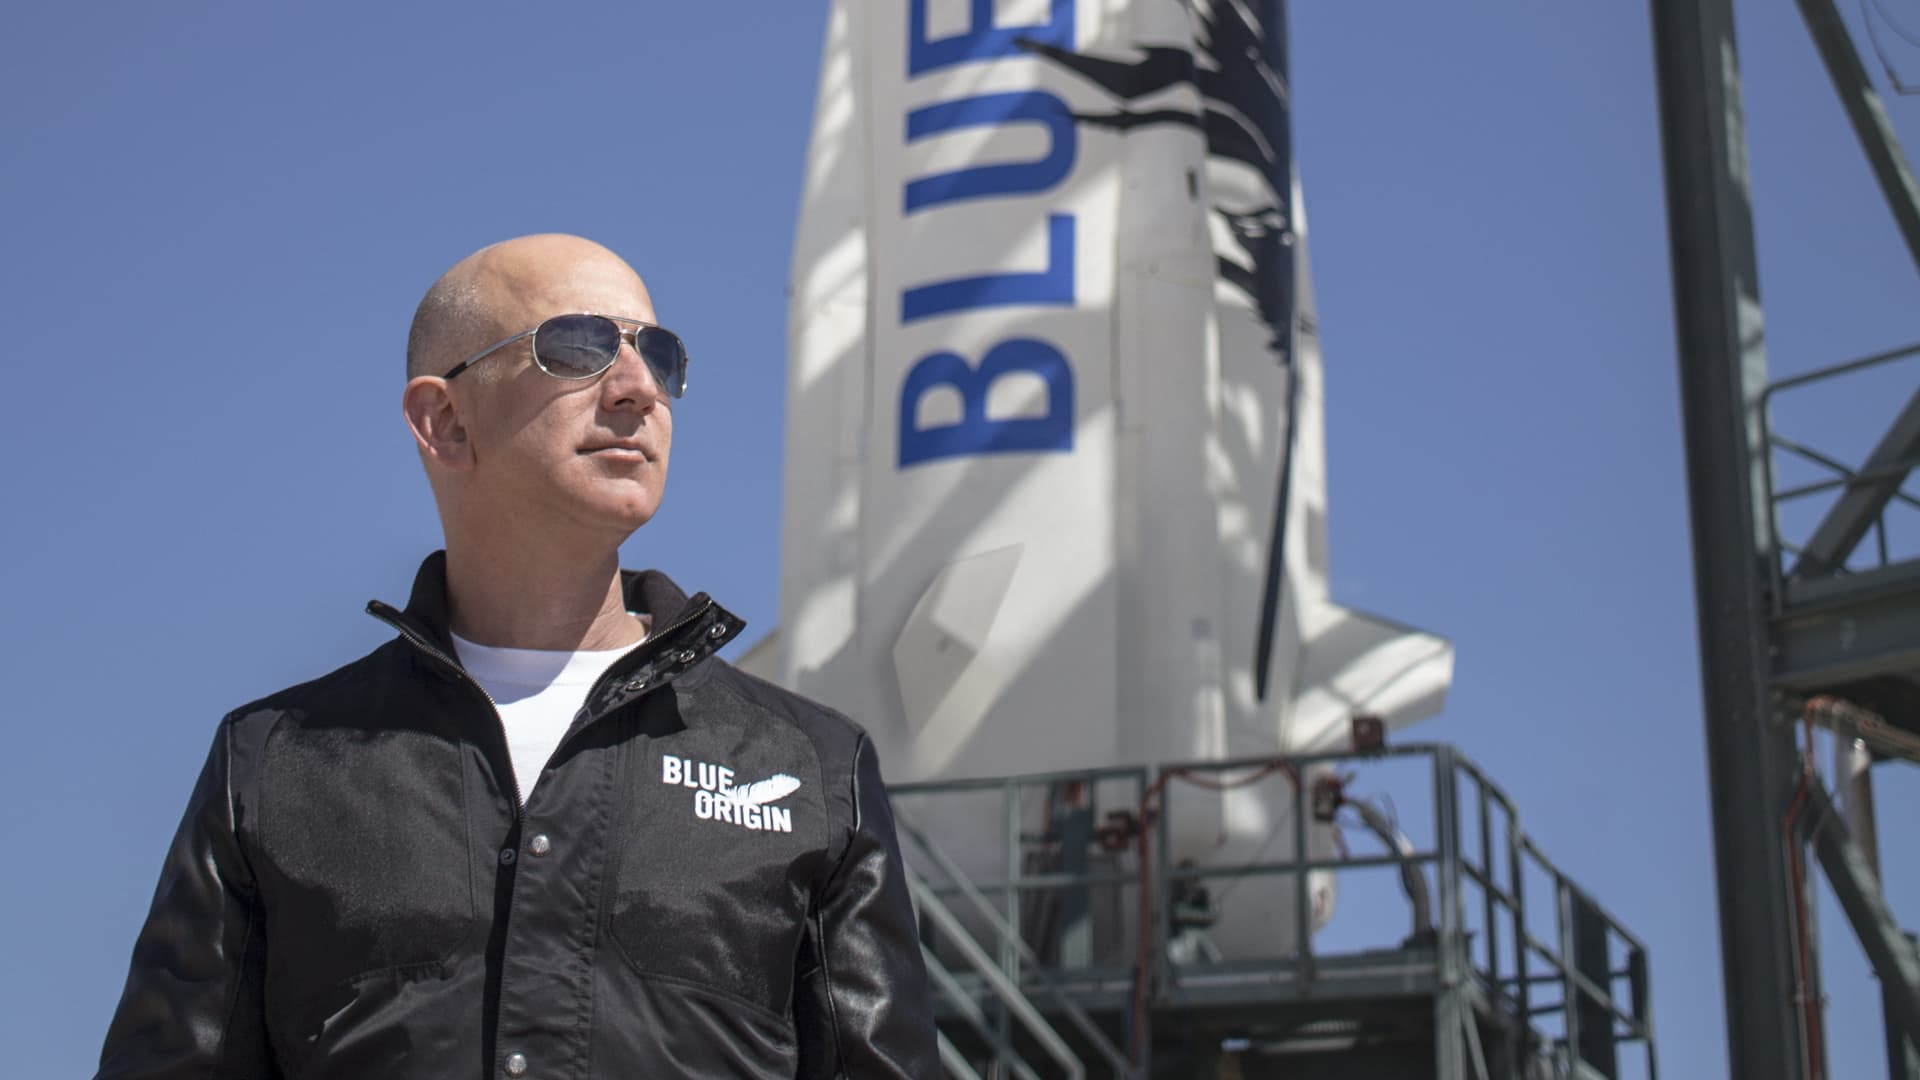 Jeff Bezos, founder of Blue Origin, is developing the New Shepard rocket for space tourism.